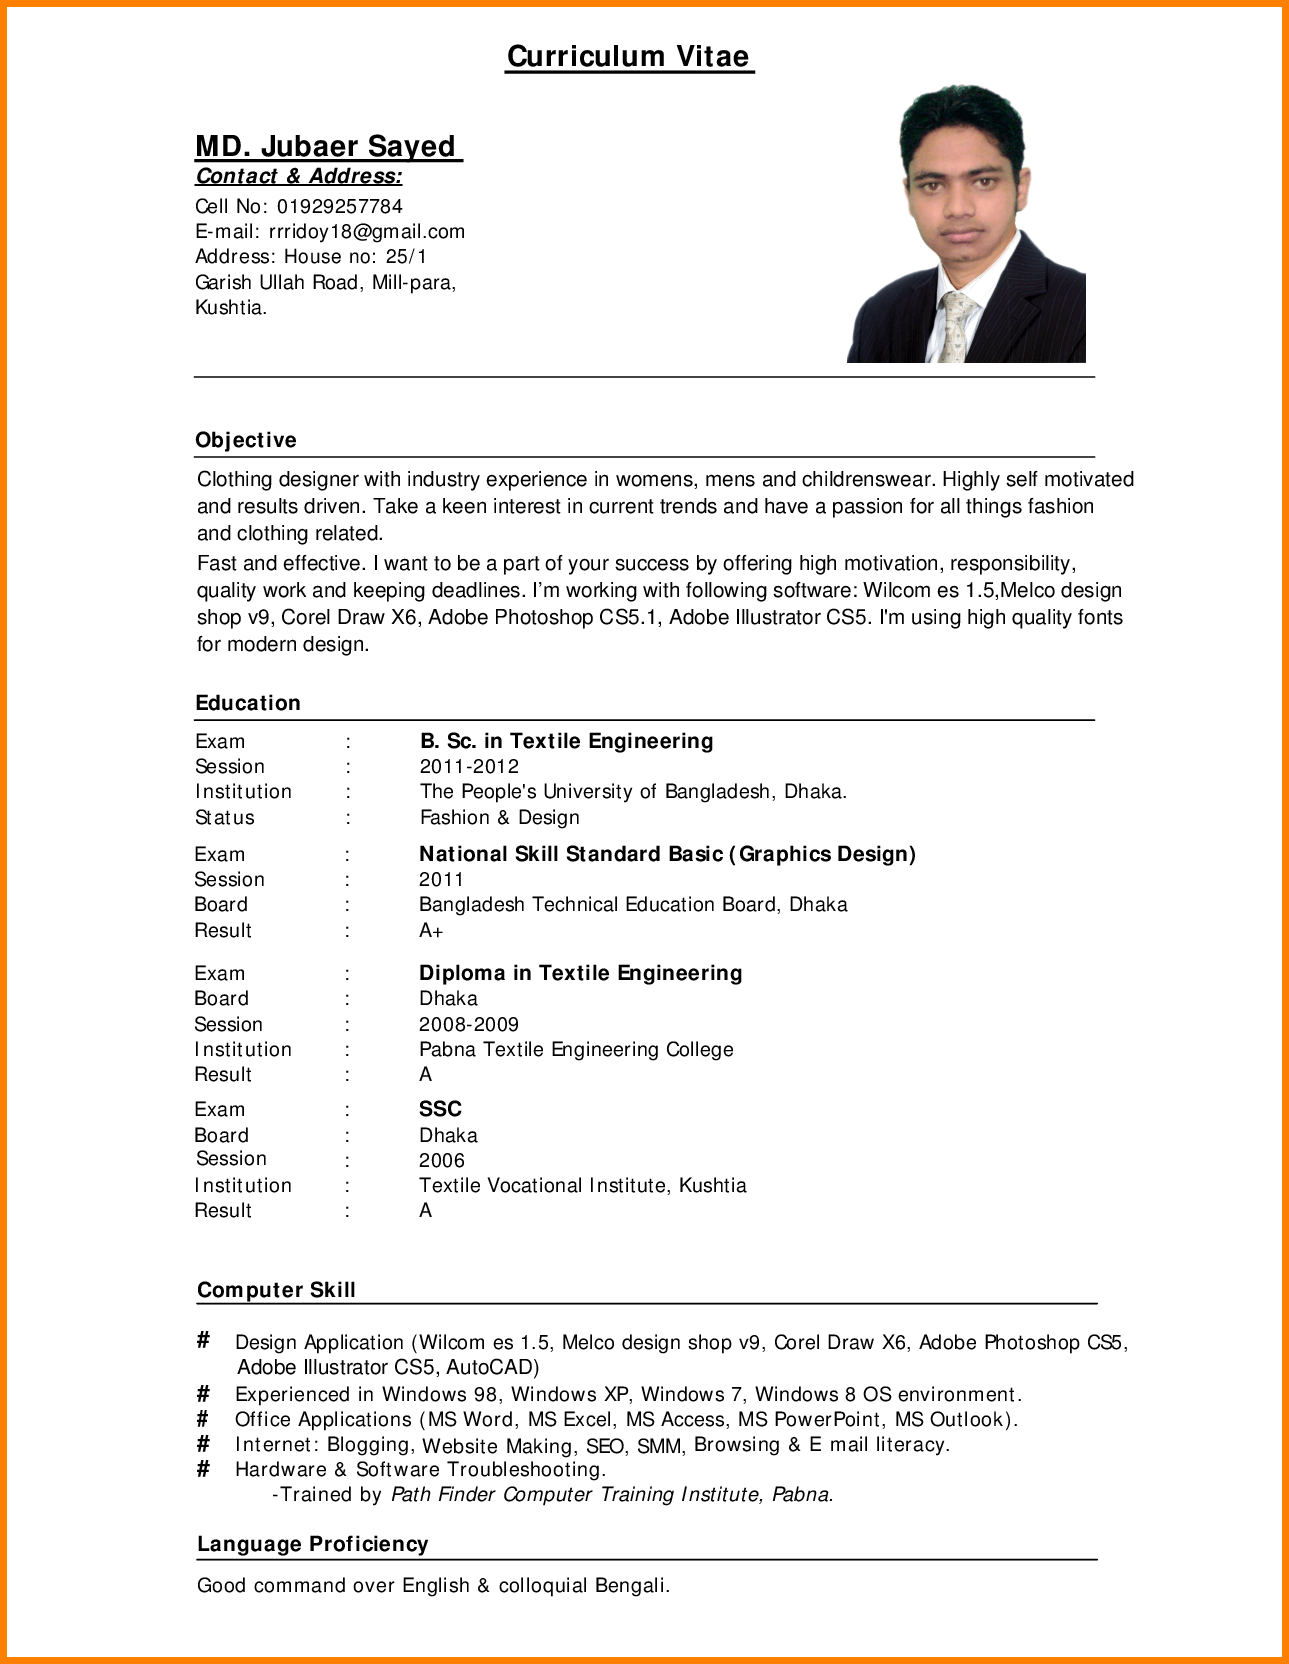 Sample Pdfputer Skills And Education For Curriculum Vitae Resume